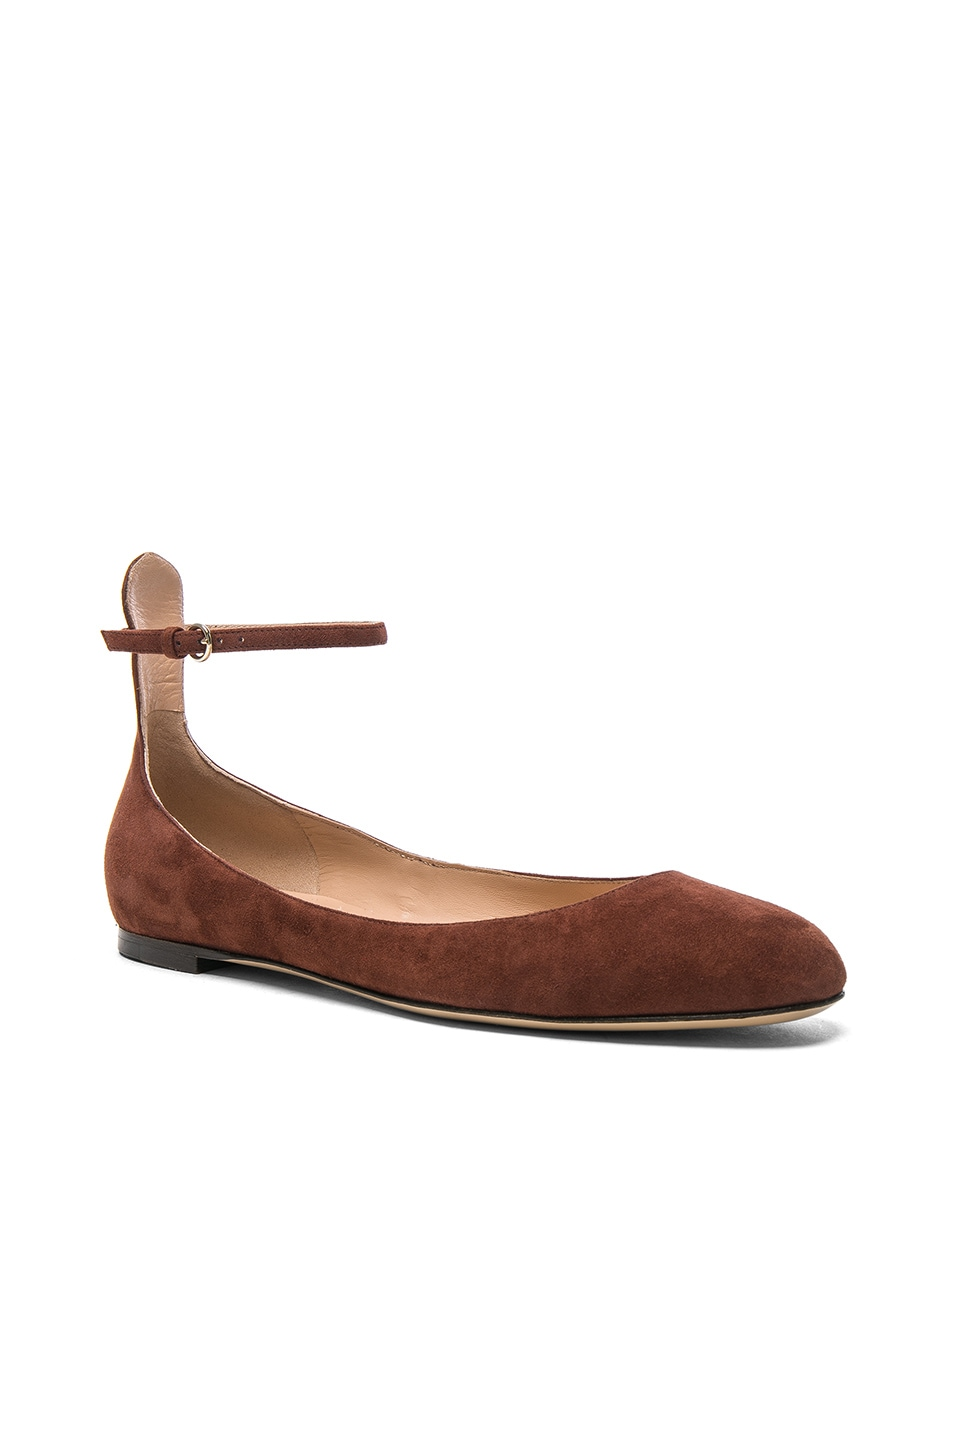 Image 2 of Valentino Suede Tan-Go Flats in Light Brown